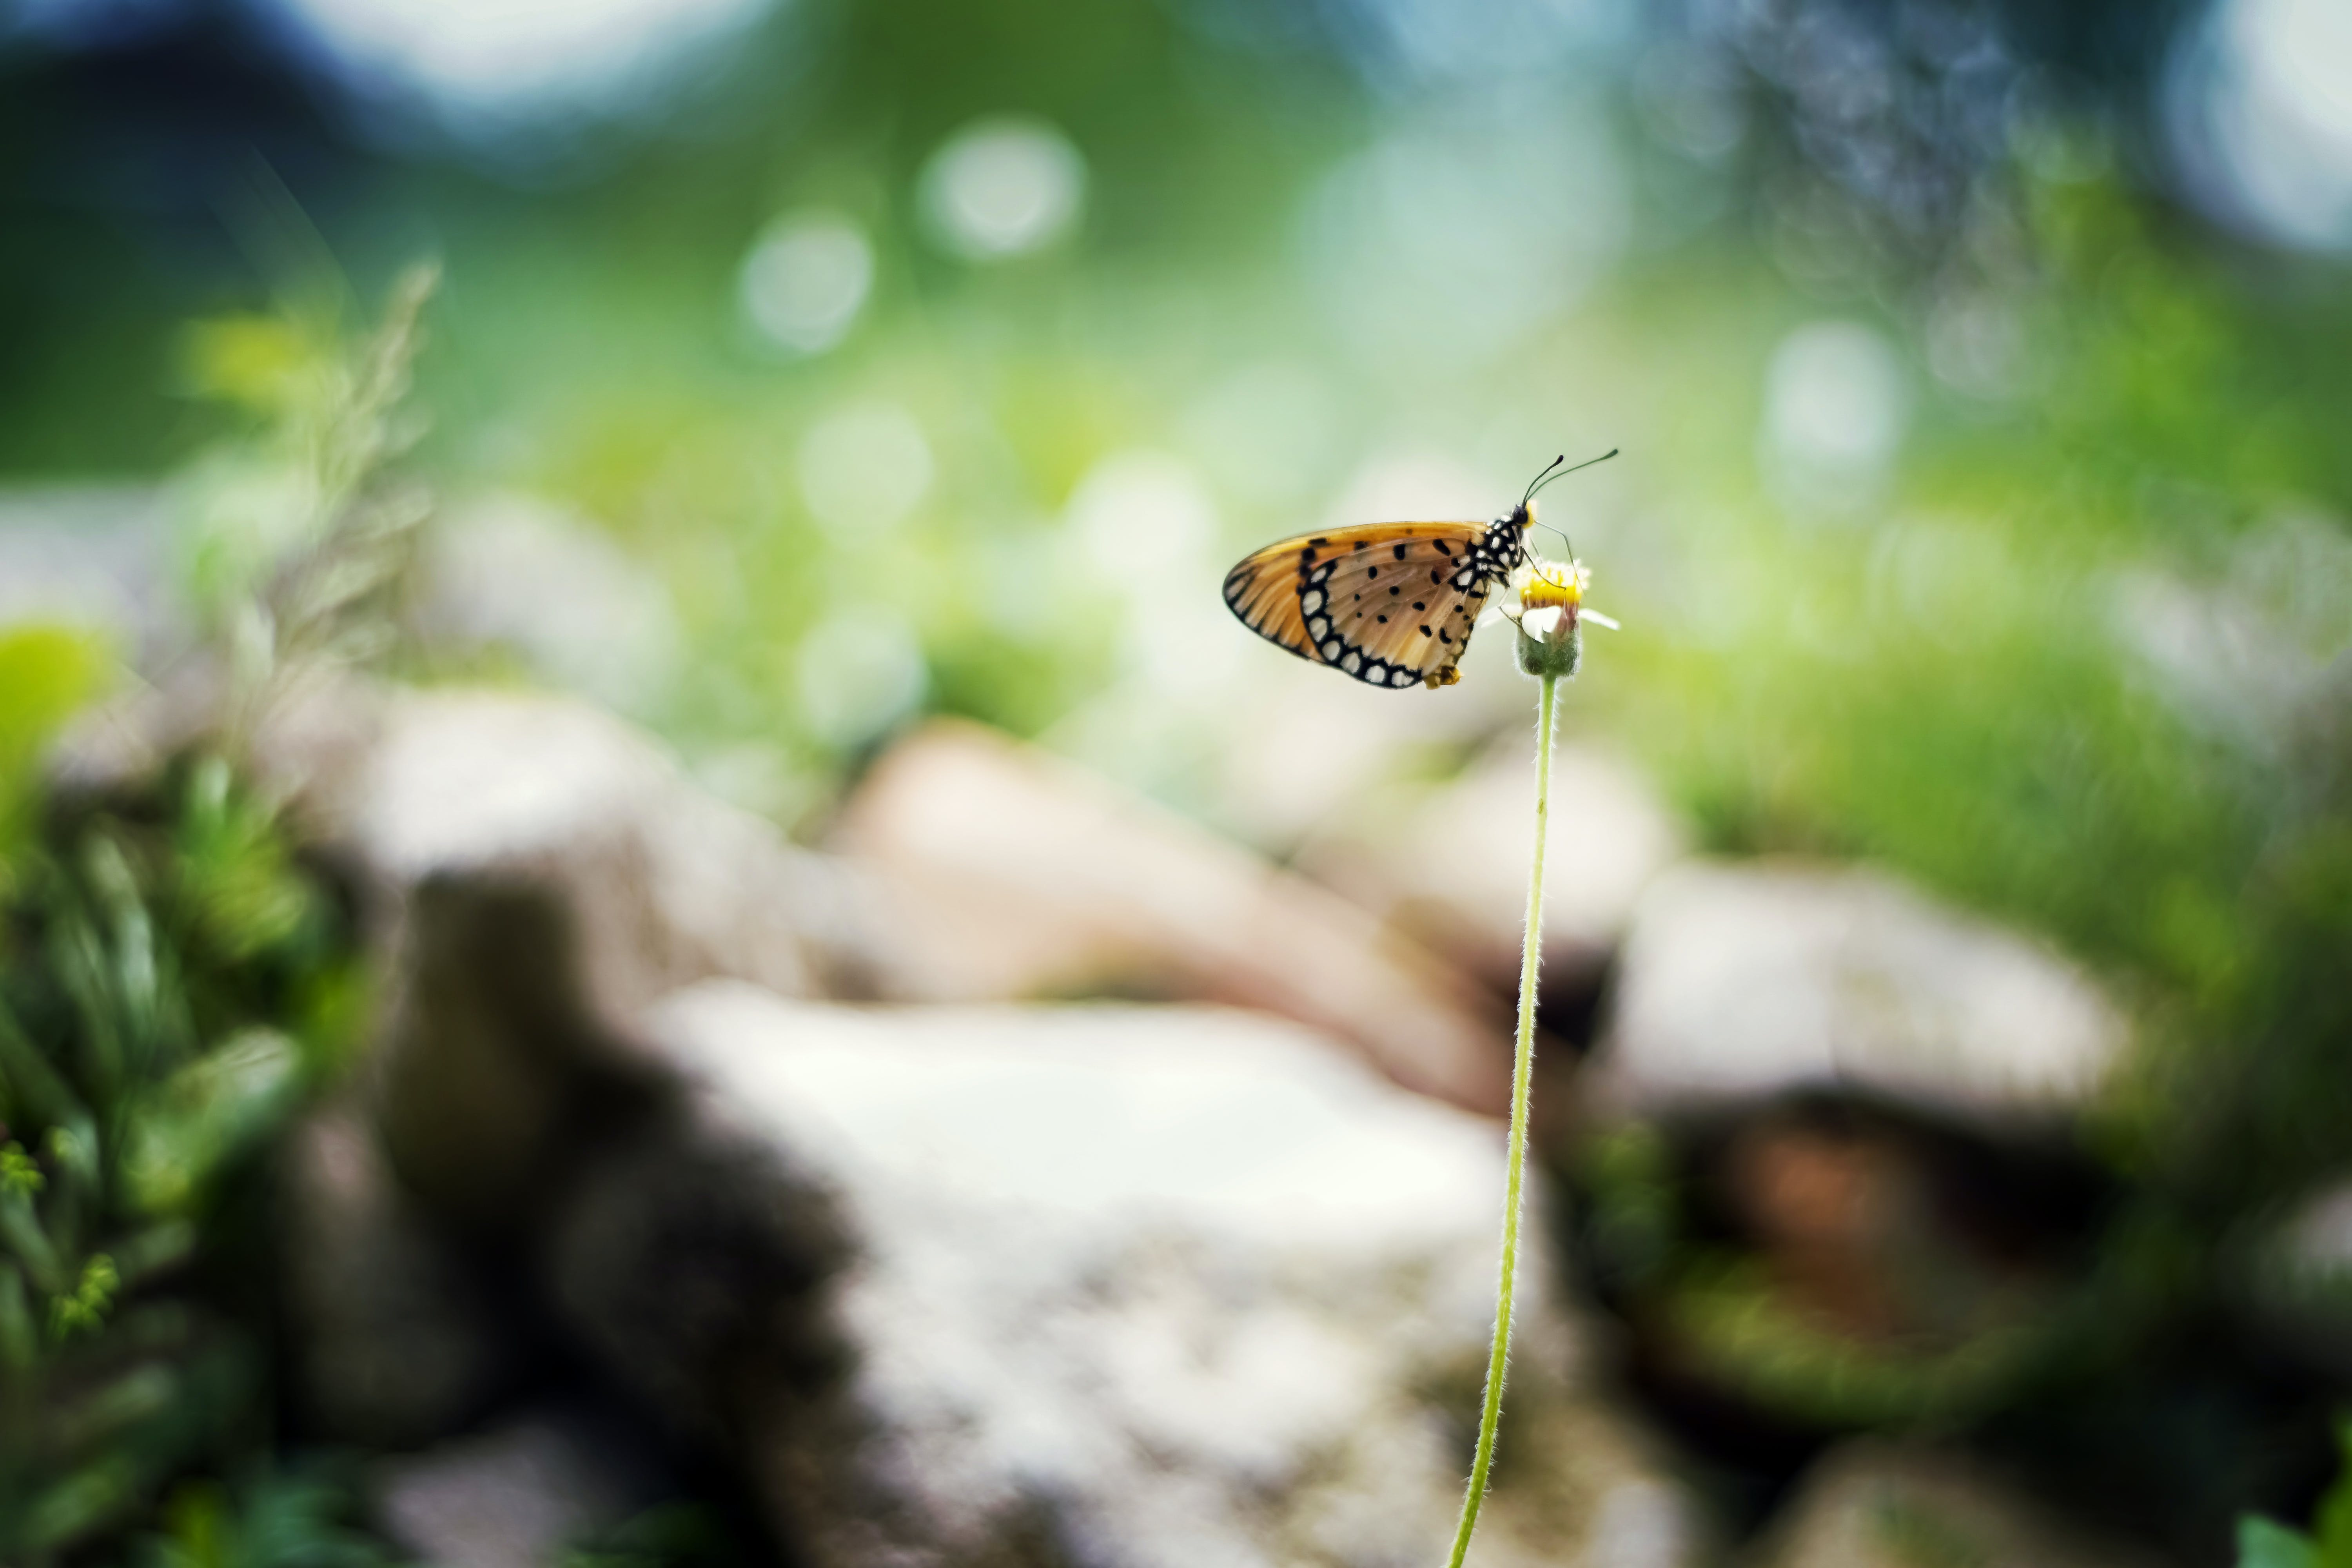 Yellow and Black Butterfly on Yellow Flower in Selective-focus Photography